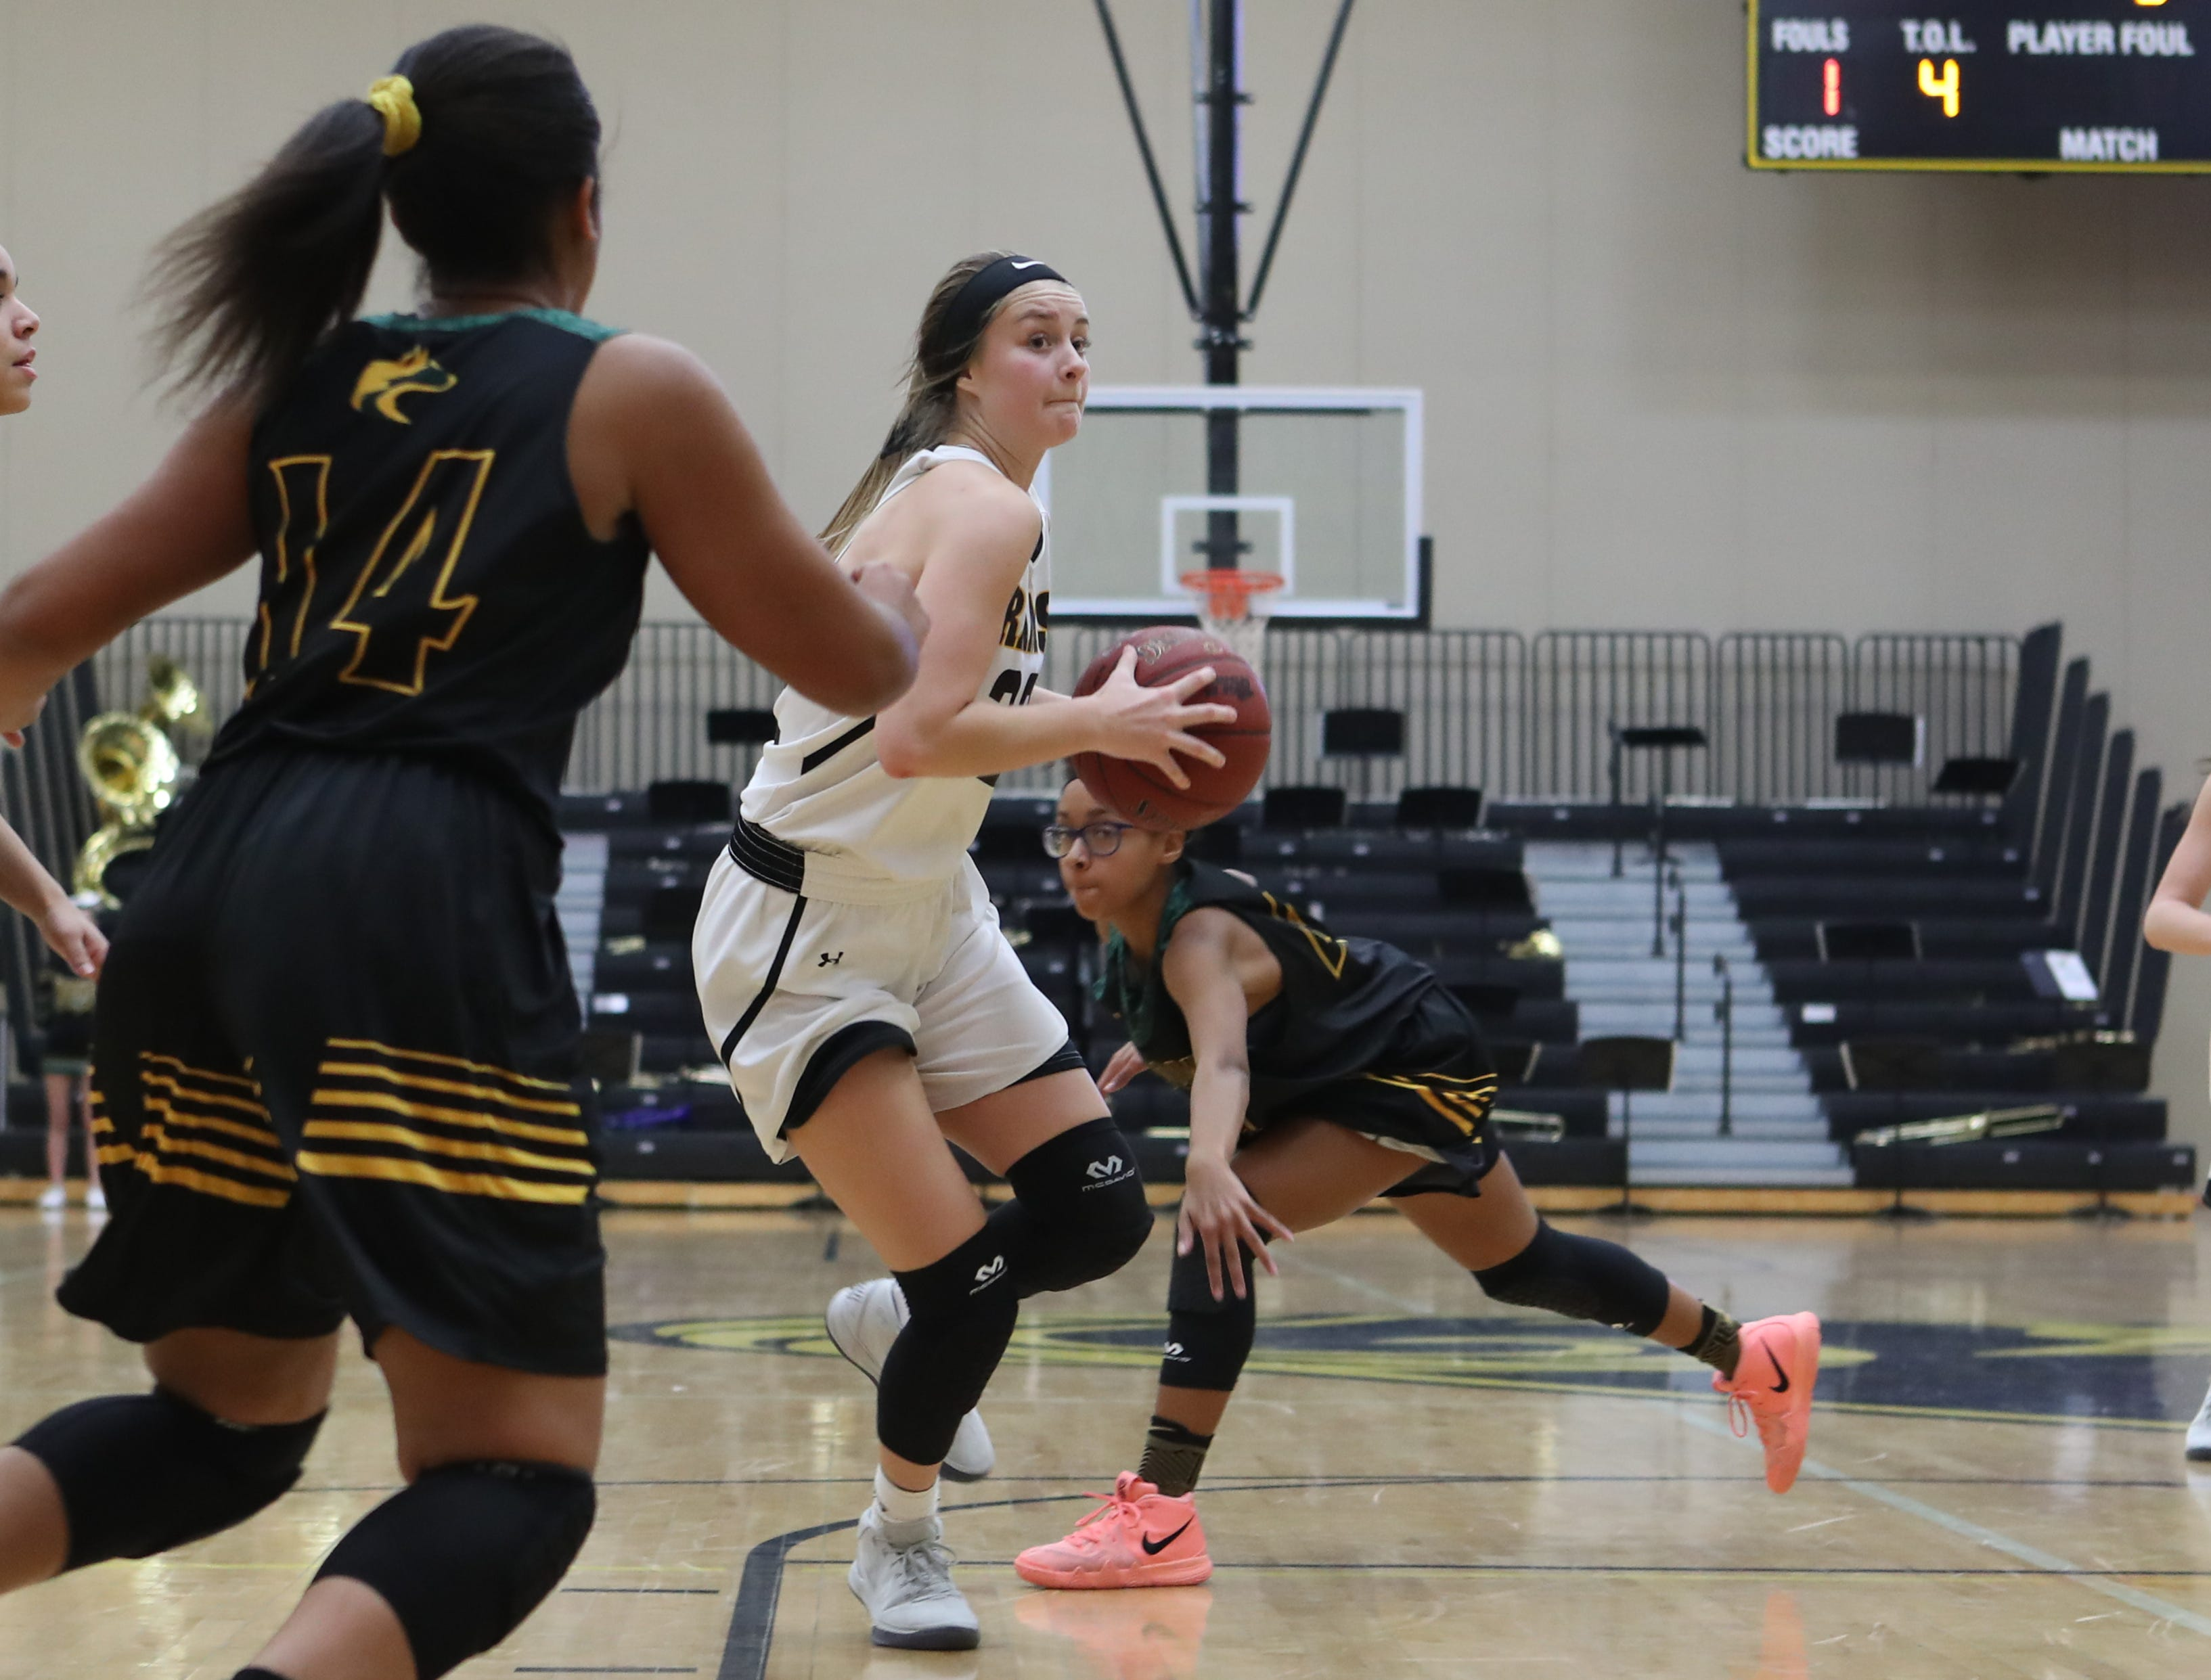 Southeast Polk Rams Maggie McGraw (32) drives the lane against the Hoover Huskies at Southeast Polk High School.